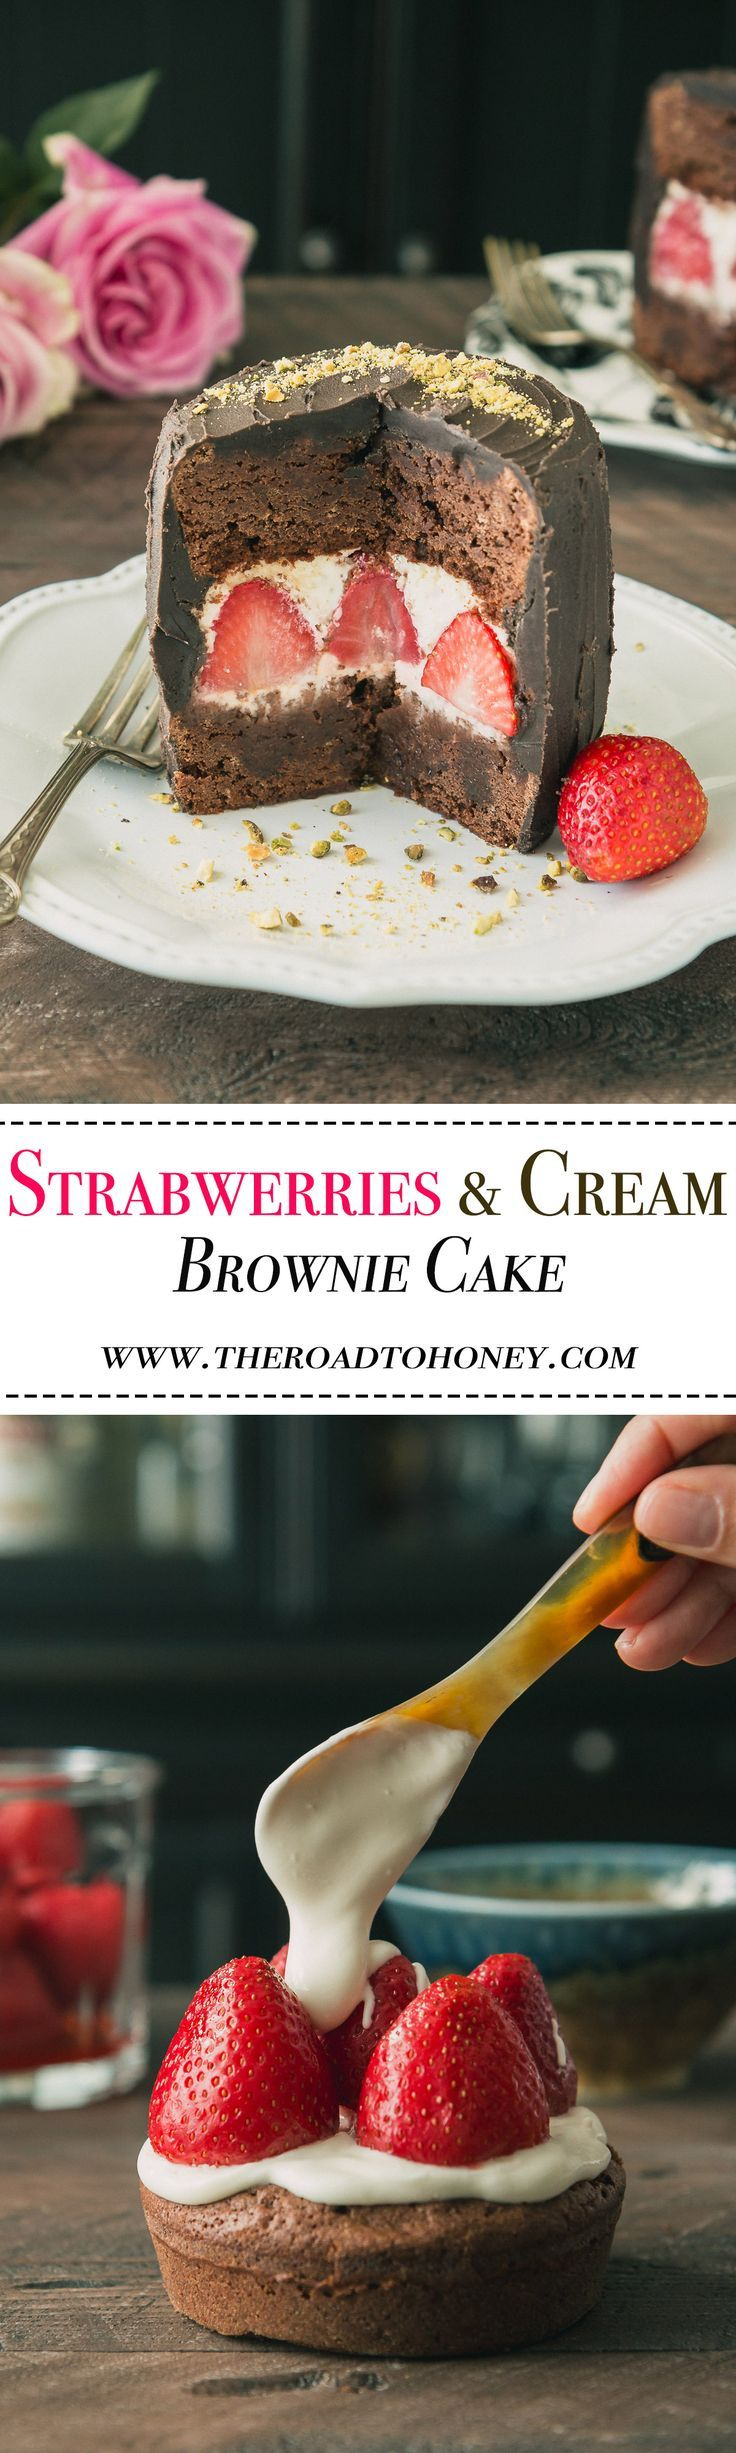 Strawberries & Cream Brownie Cake - A chocolate lover's dream come true. This rich & fudge brownie cake is stuffed with whole strawberries & cream & surrounded with a black cocoa frosting. Perfect for Valentines Day or any other day you want to treat yourself to a decadent treat. Click for RECIPE.